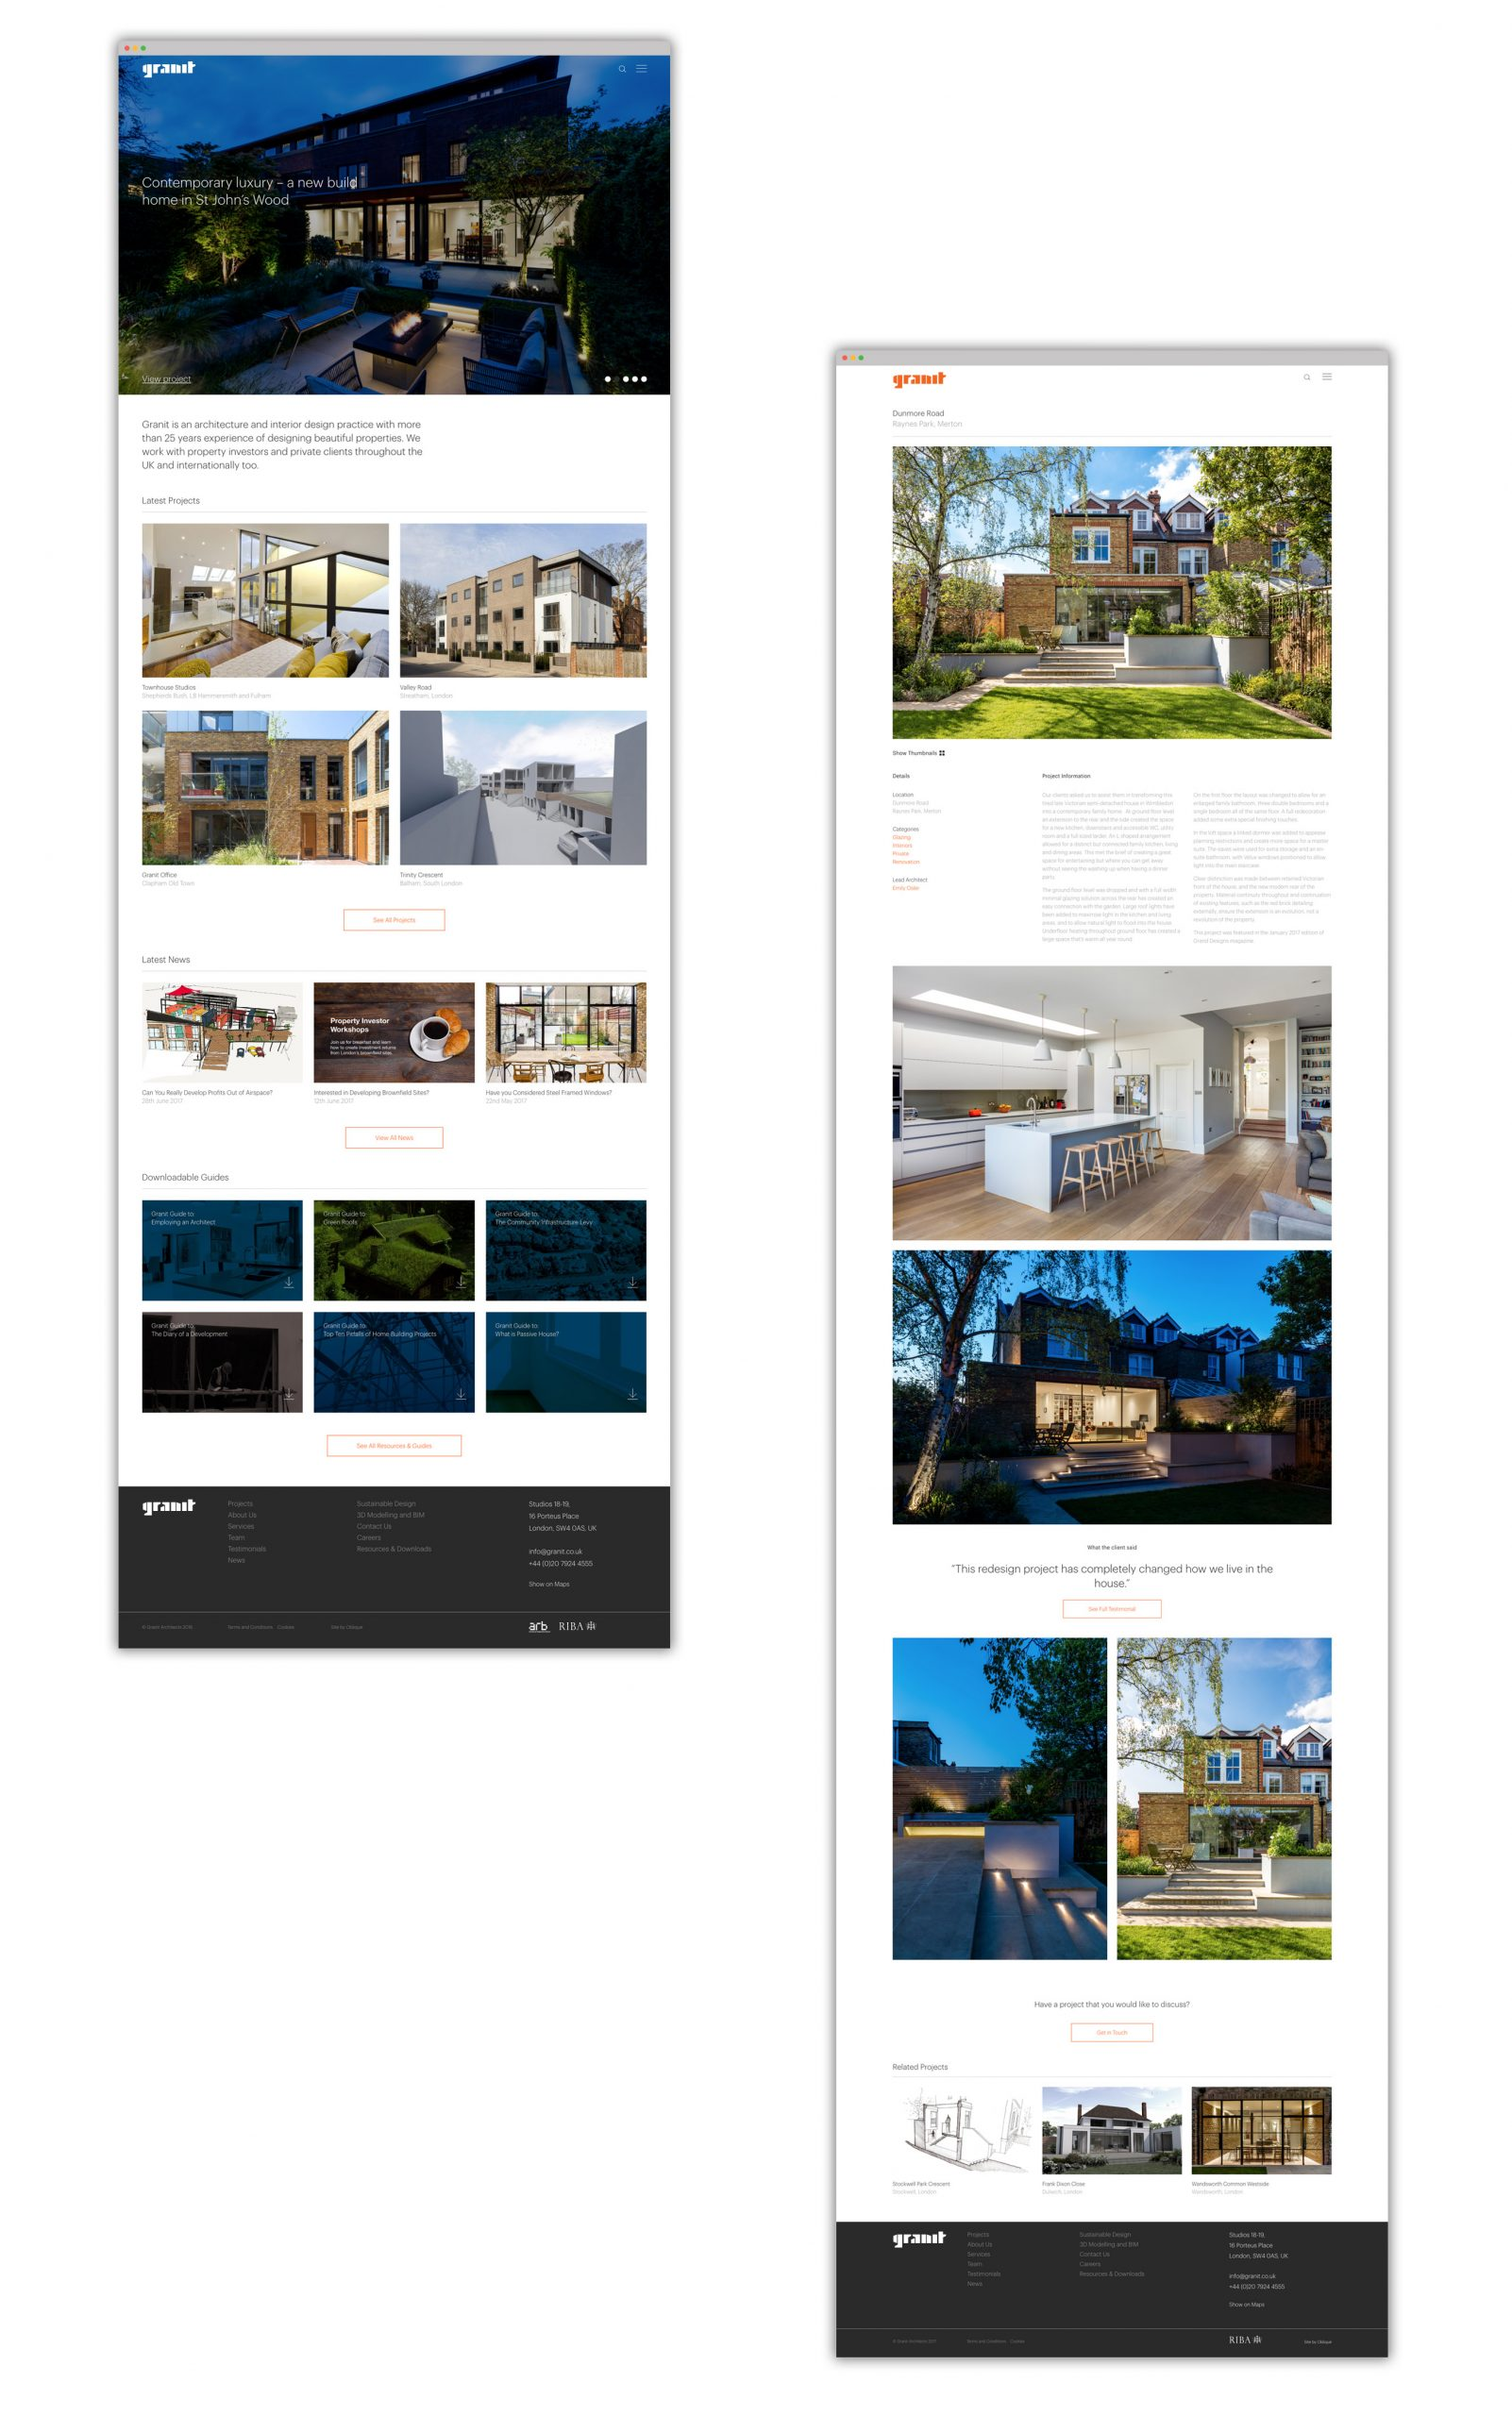 granit-project-pages